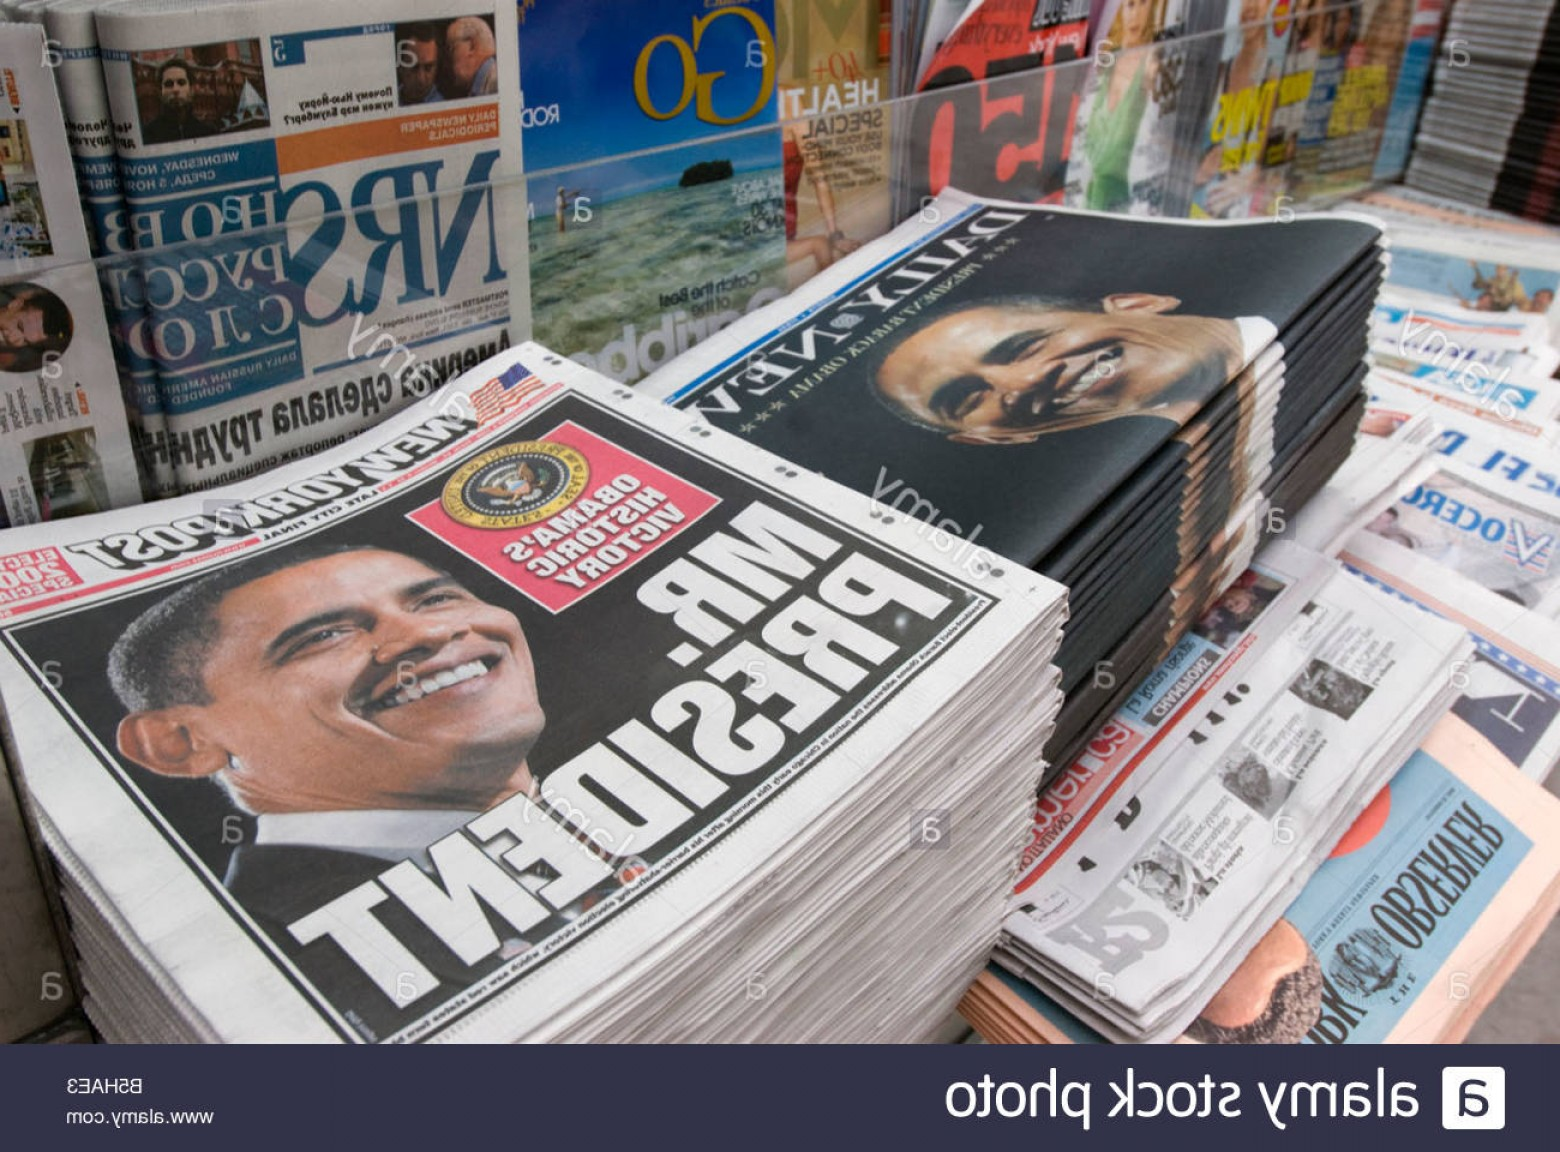 Vector Newspapers Snacks: Stock Photo Newspapers At A New York City Newsstand Announcing Barack Obamas Historic